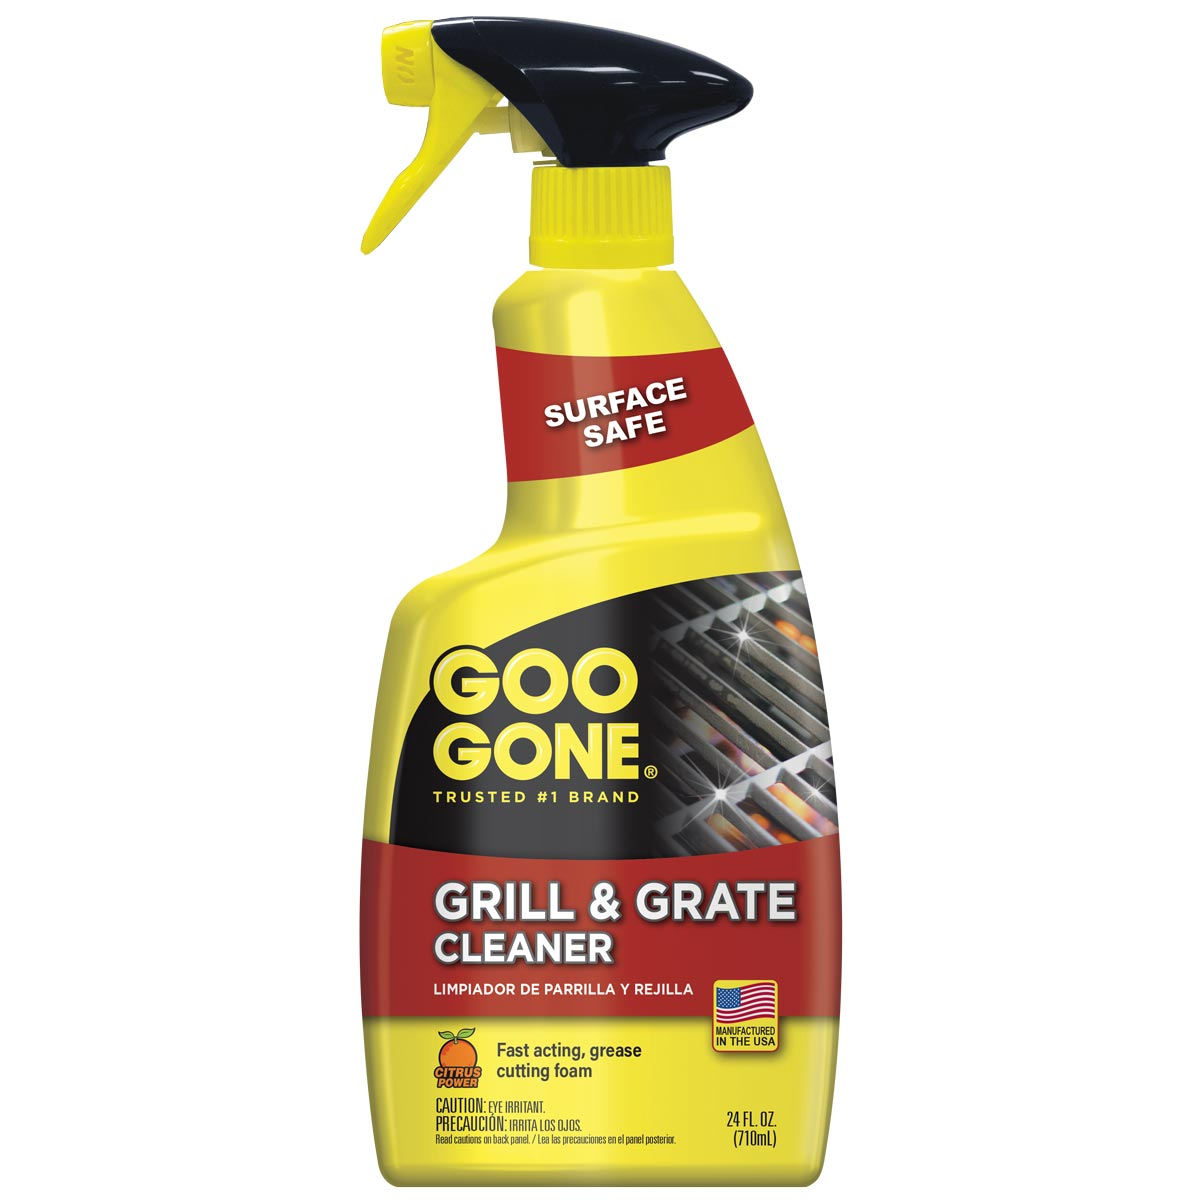 Grill & Grate Cleaner